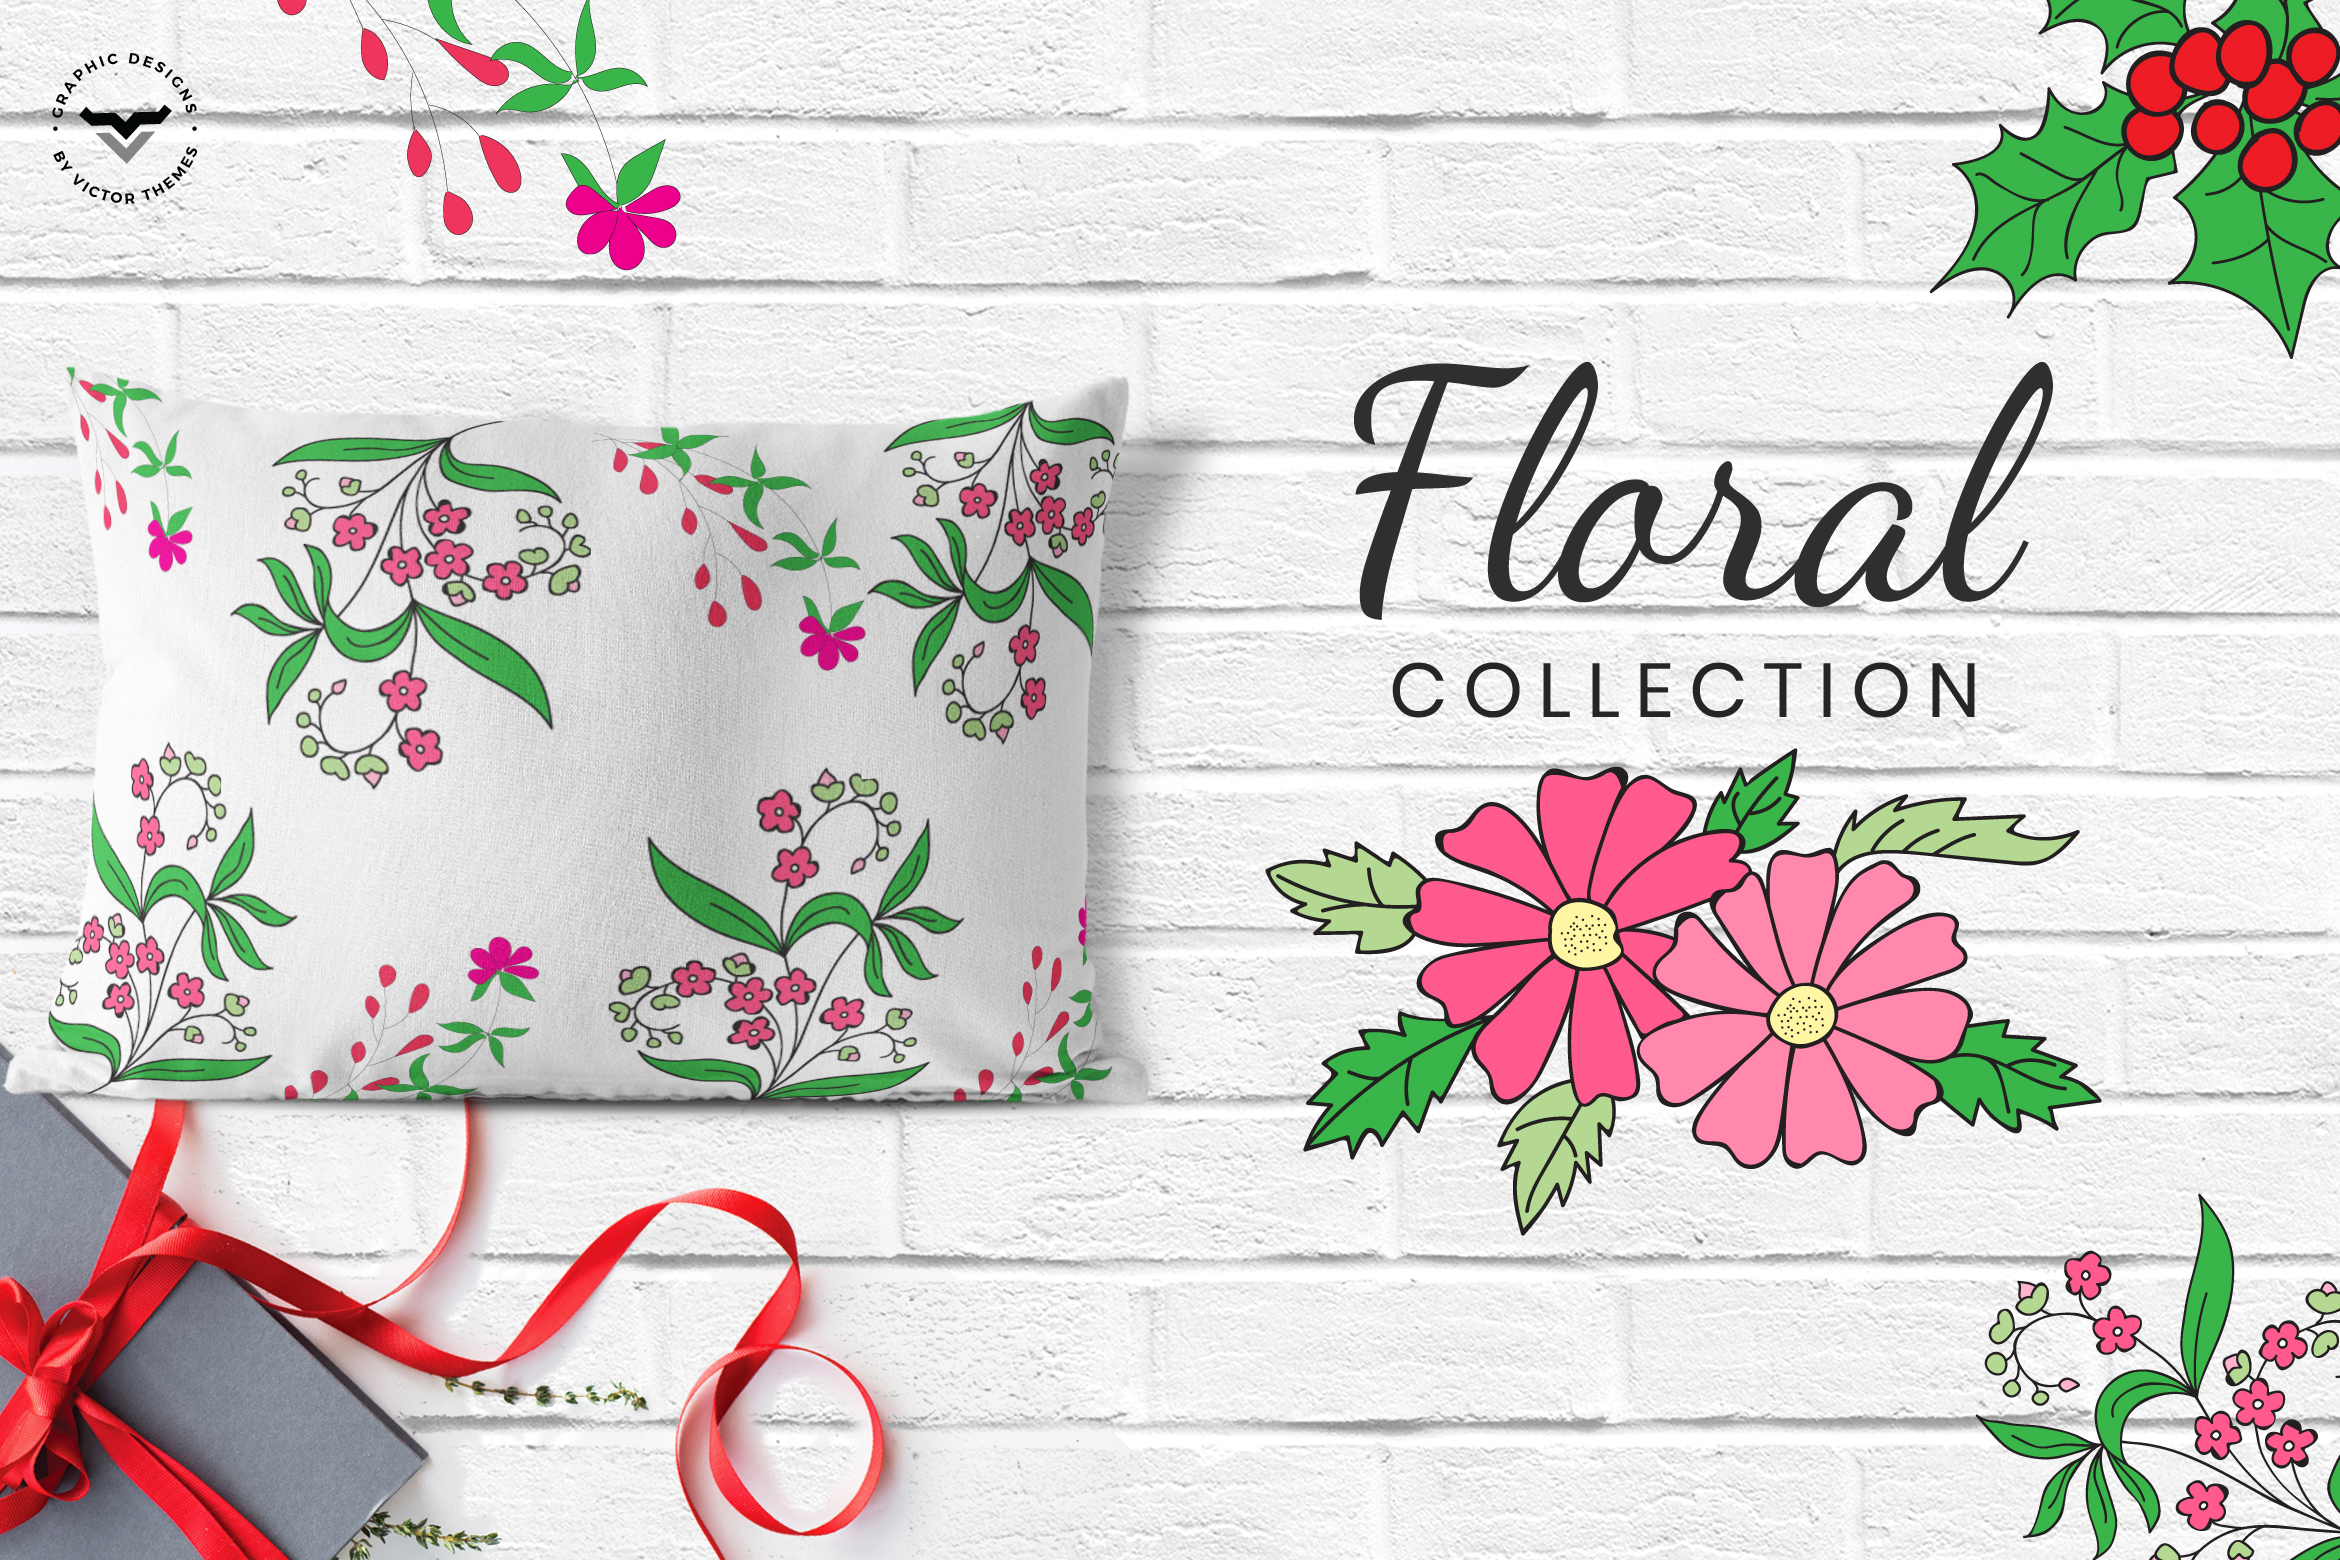 Floral Collections Elements